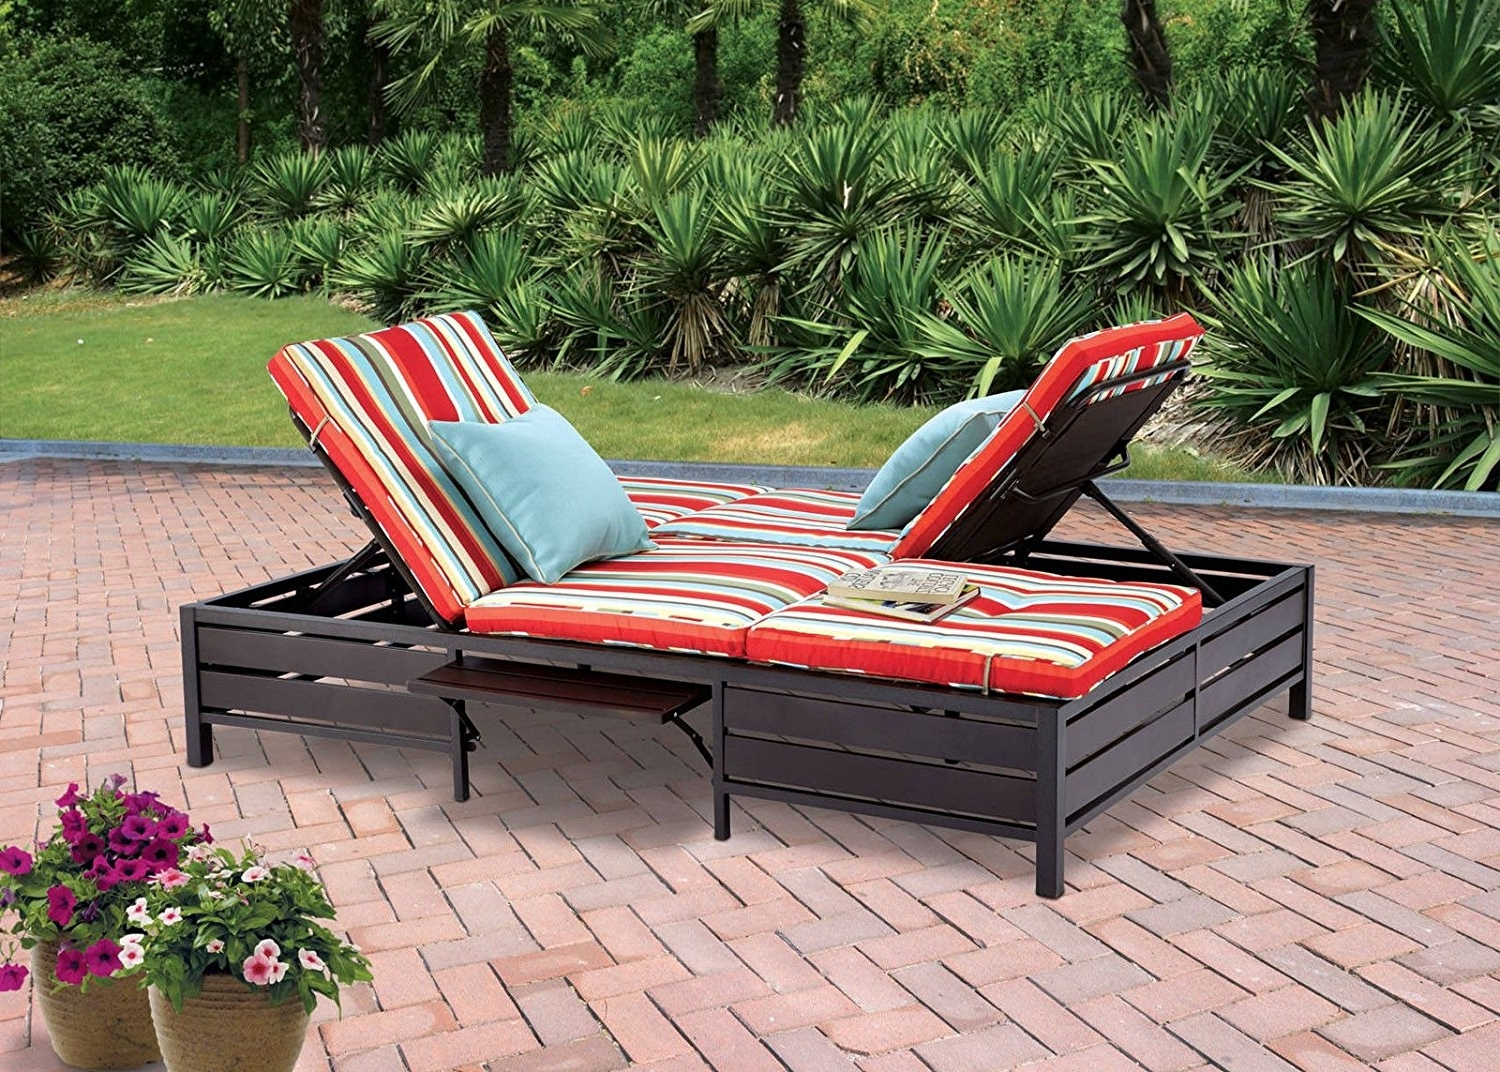 Widely Used Chaise Lounge Chairs At Walmart With Regard To Amazon : Double Chaise Lounger – This Red Stripe Outdoor (View 10 of 15)